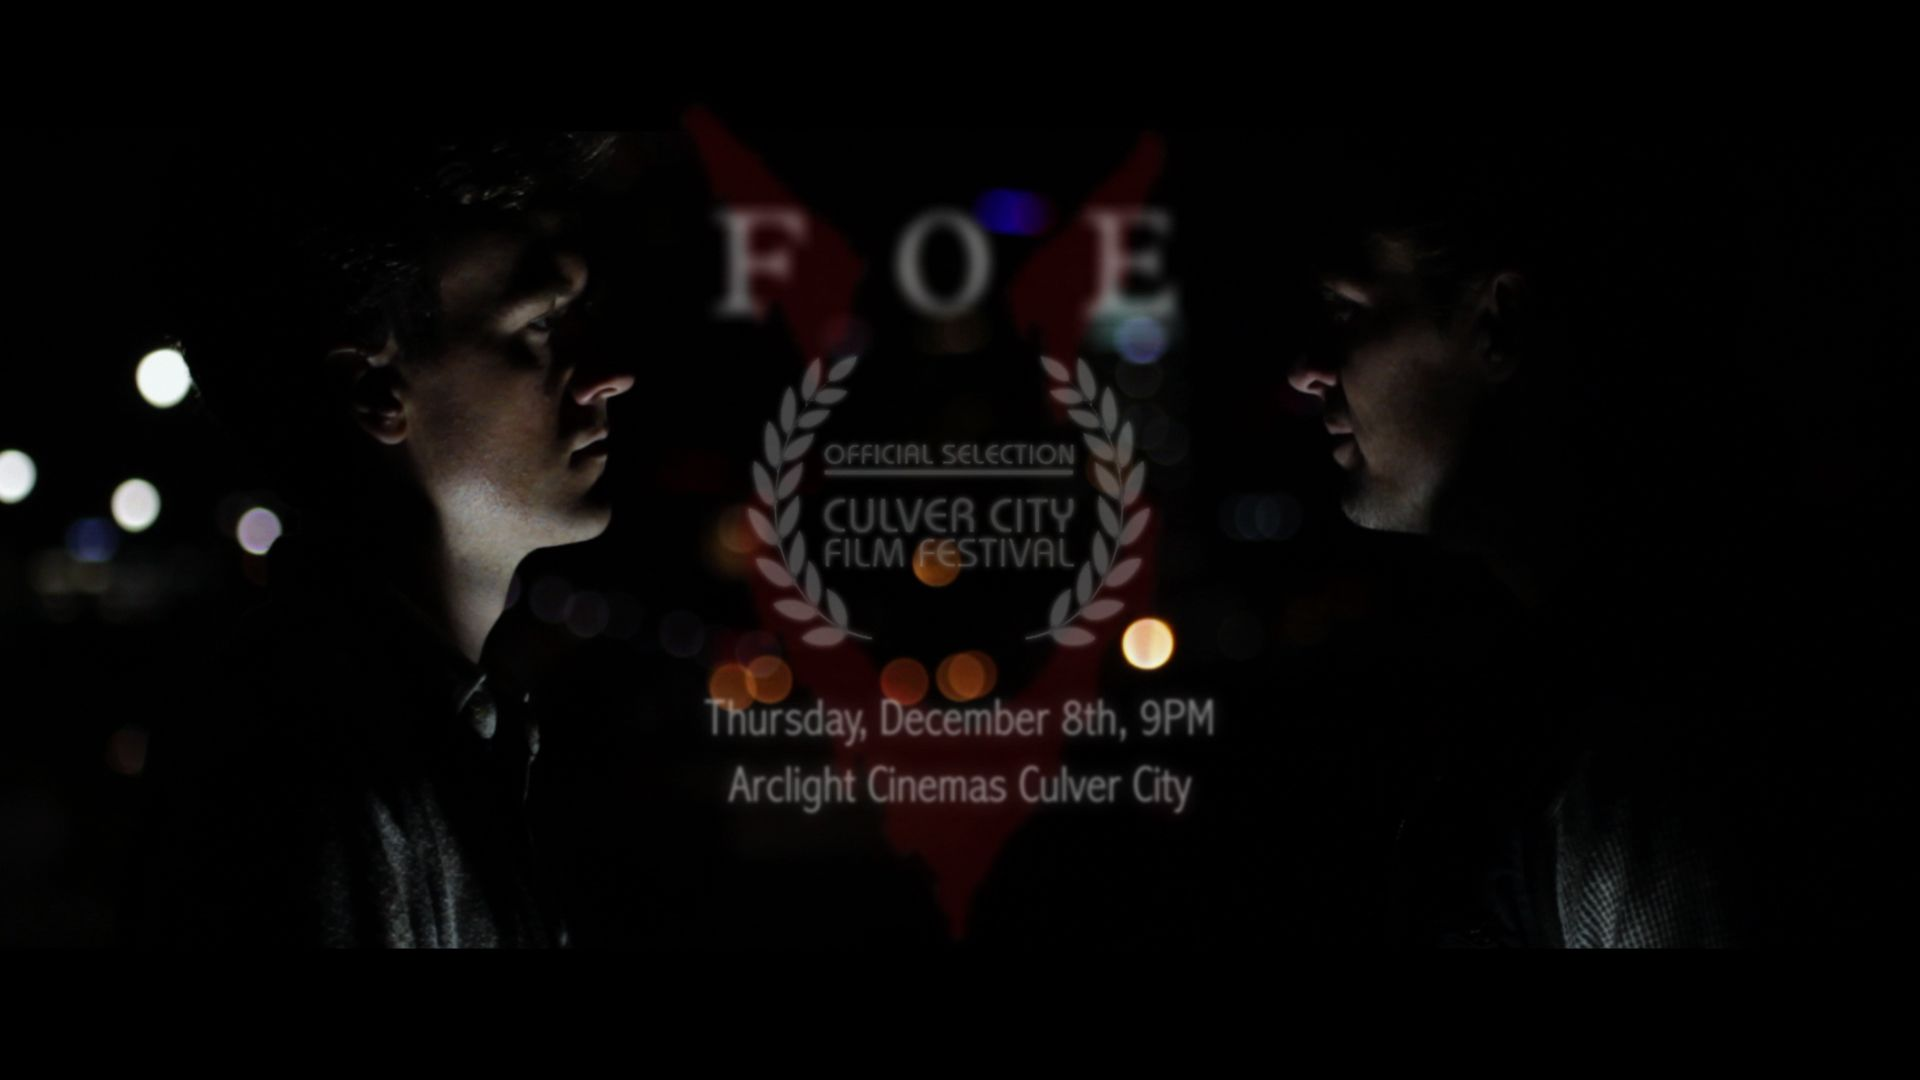 FOE screening flyer